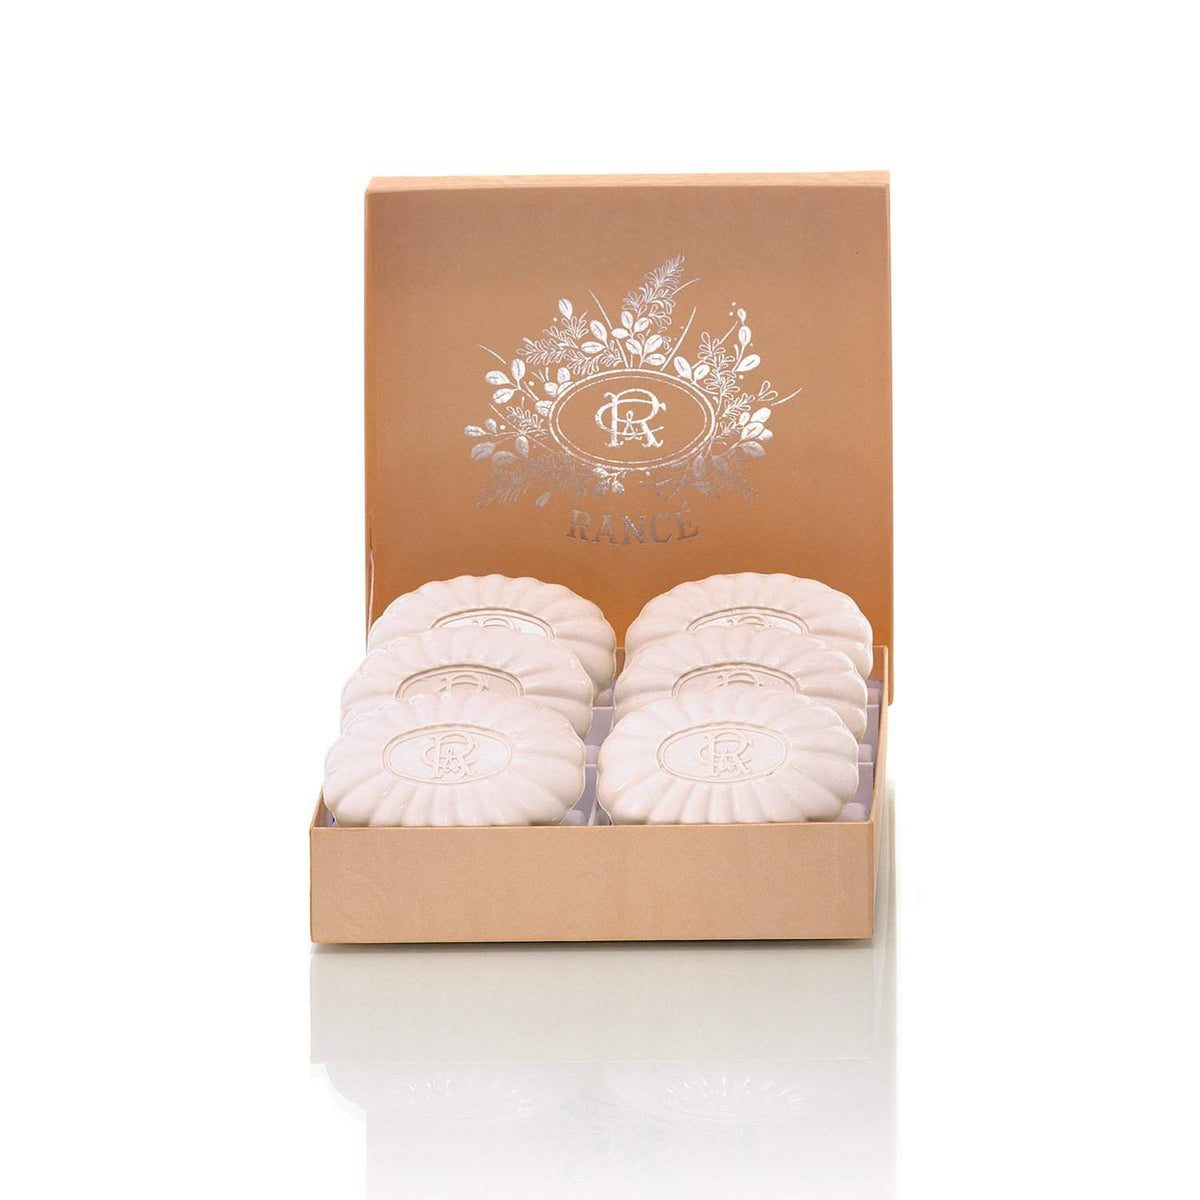 Rance Soaps Narcissus Soap Box-Rance Soaps-Oak Manor Fragrances